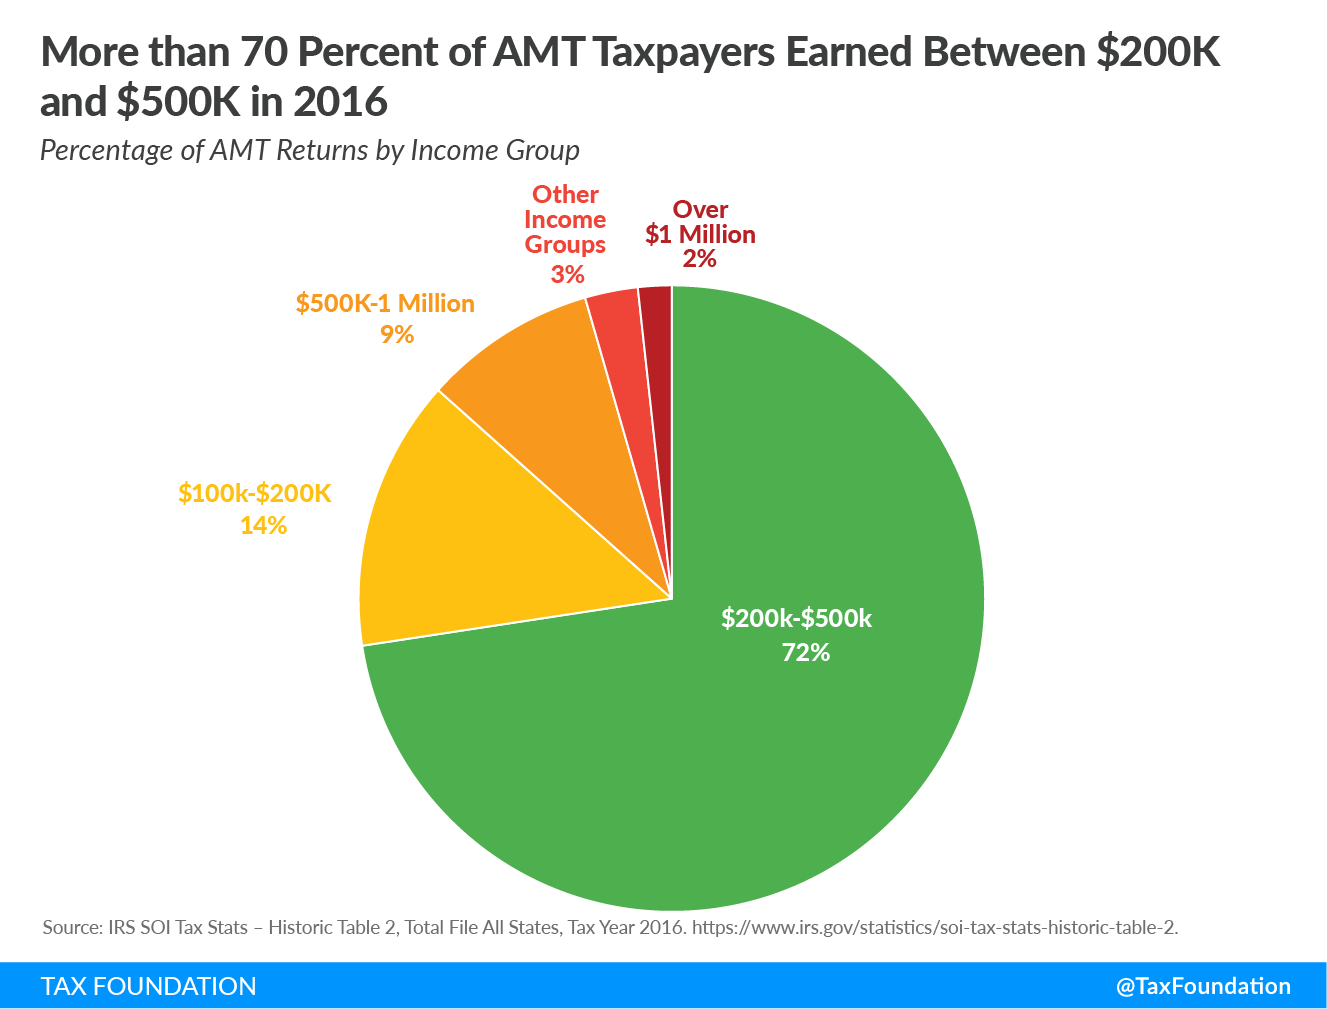 More than 70% of AMT taxpayers earned between $200k and $500k. Percentage of AMT returns by income group. SALT deduction AMT alternative minimum tax SALT